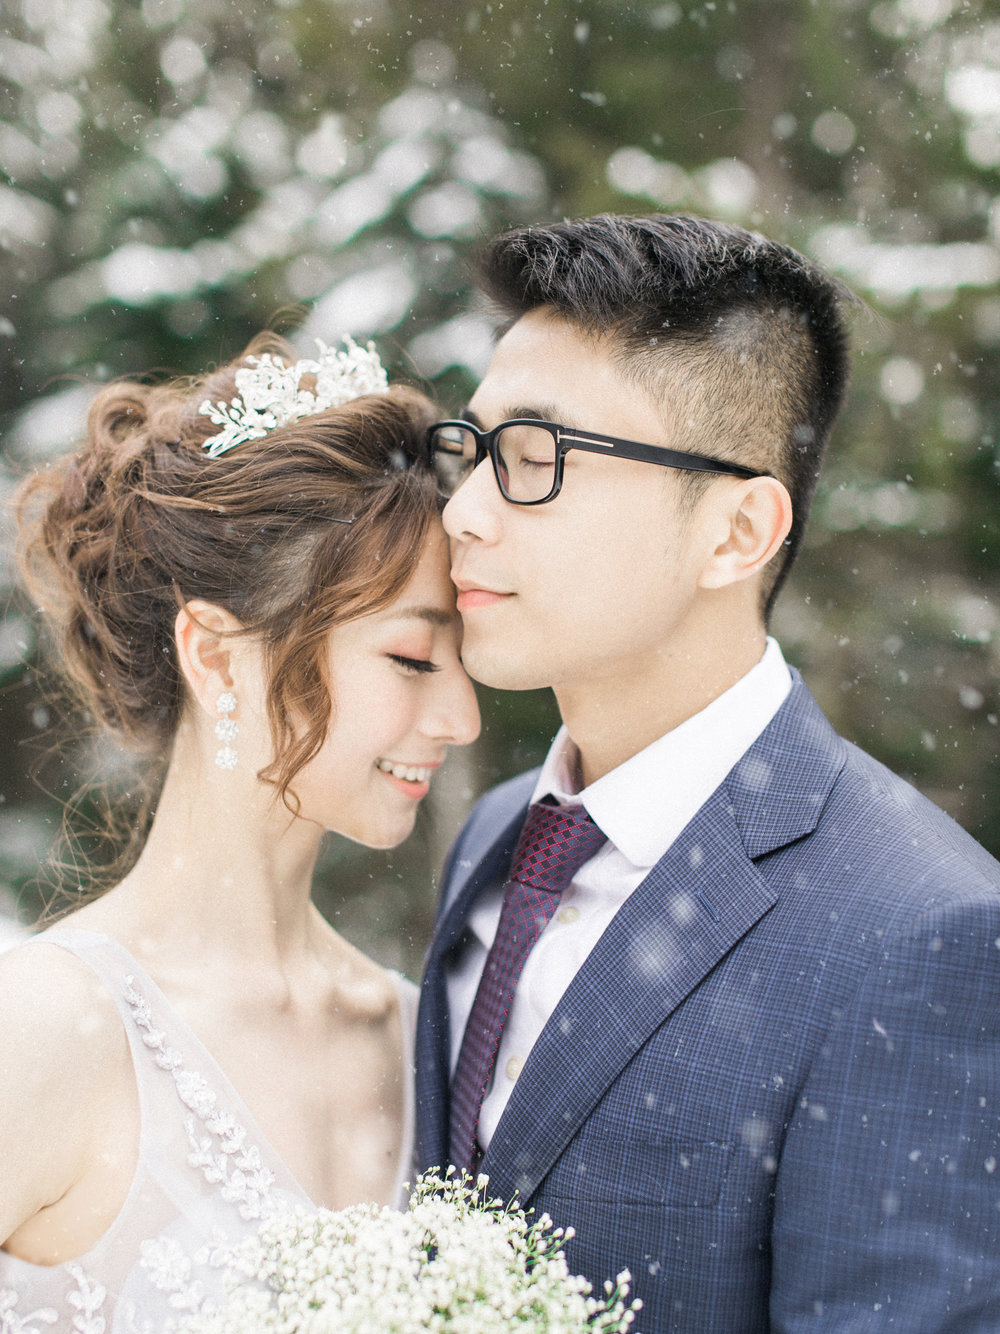 20170225LeslyJerryPreWedding-9 copy.jpg